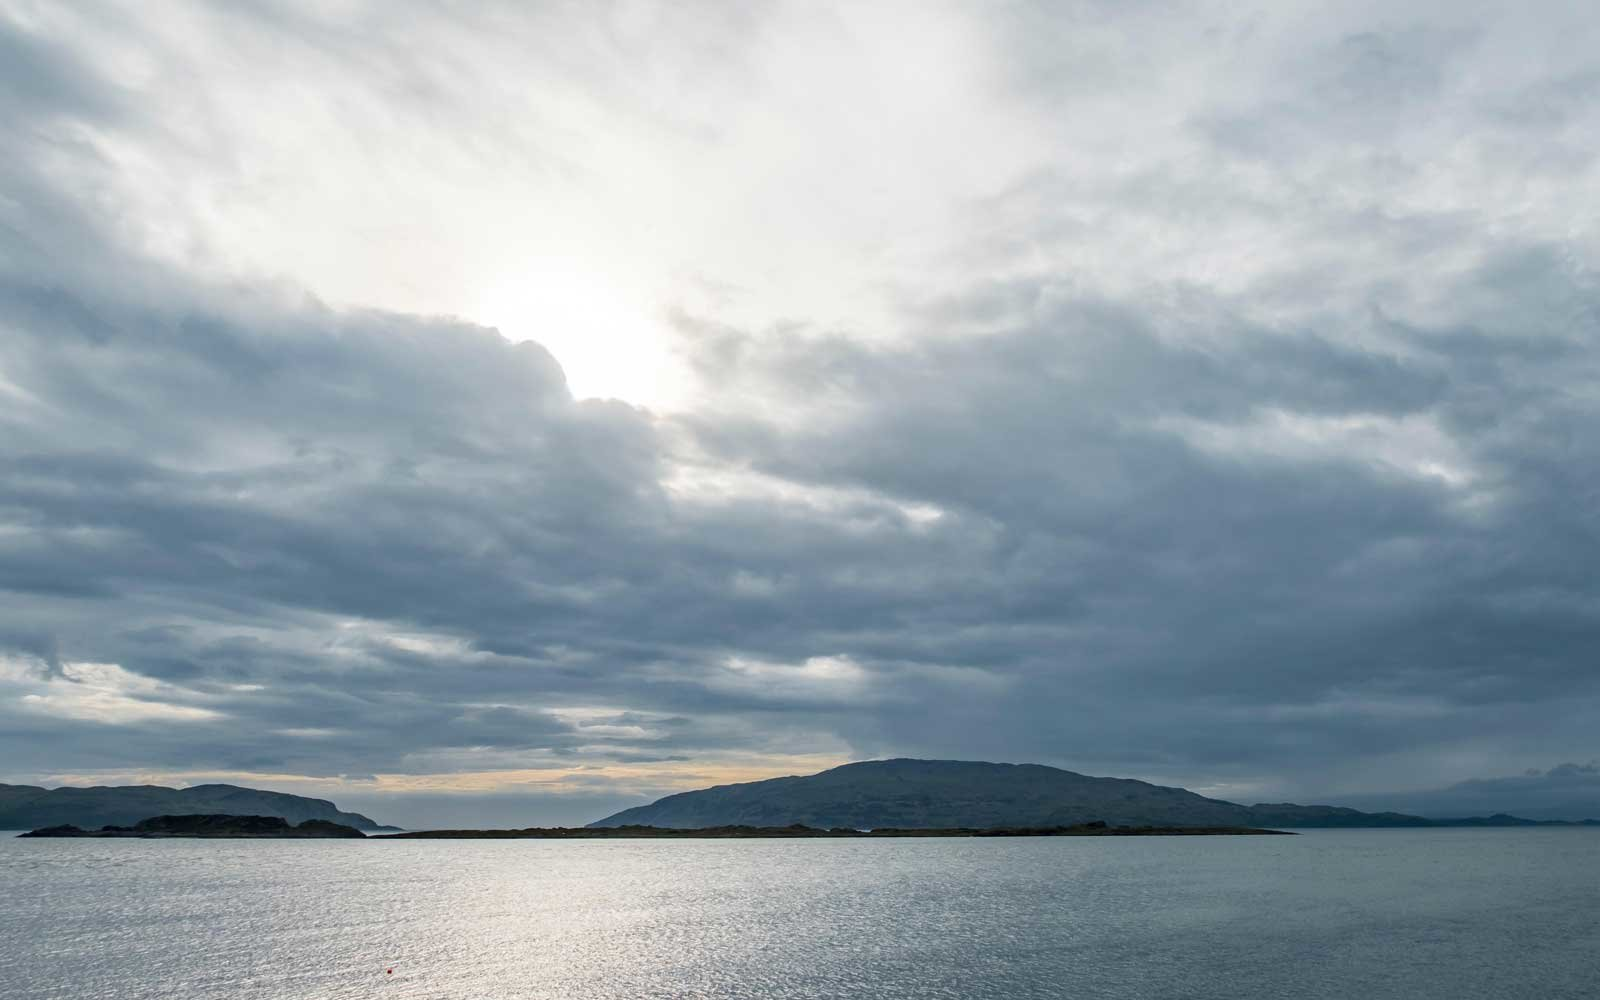 Craignish point with the Sound of Jura in the background, Scotland